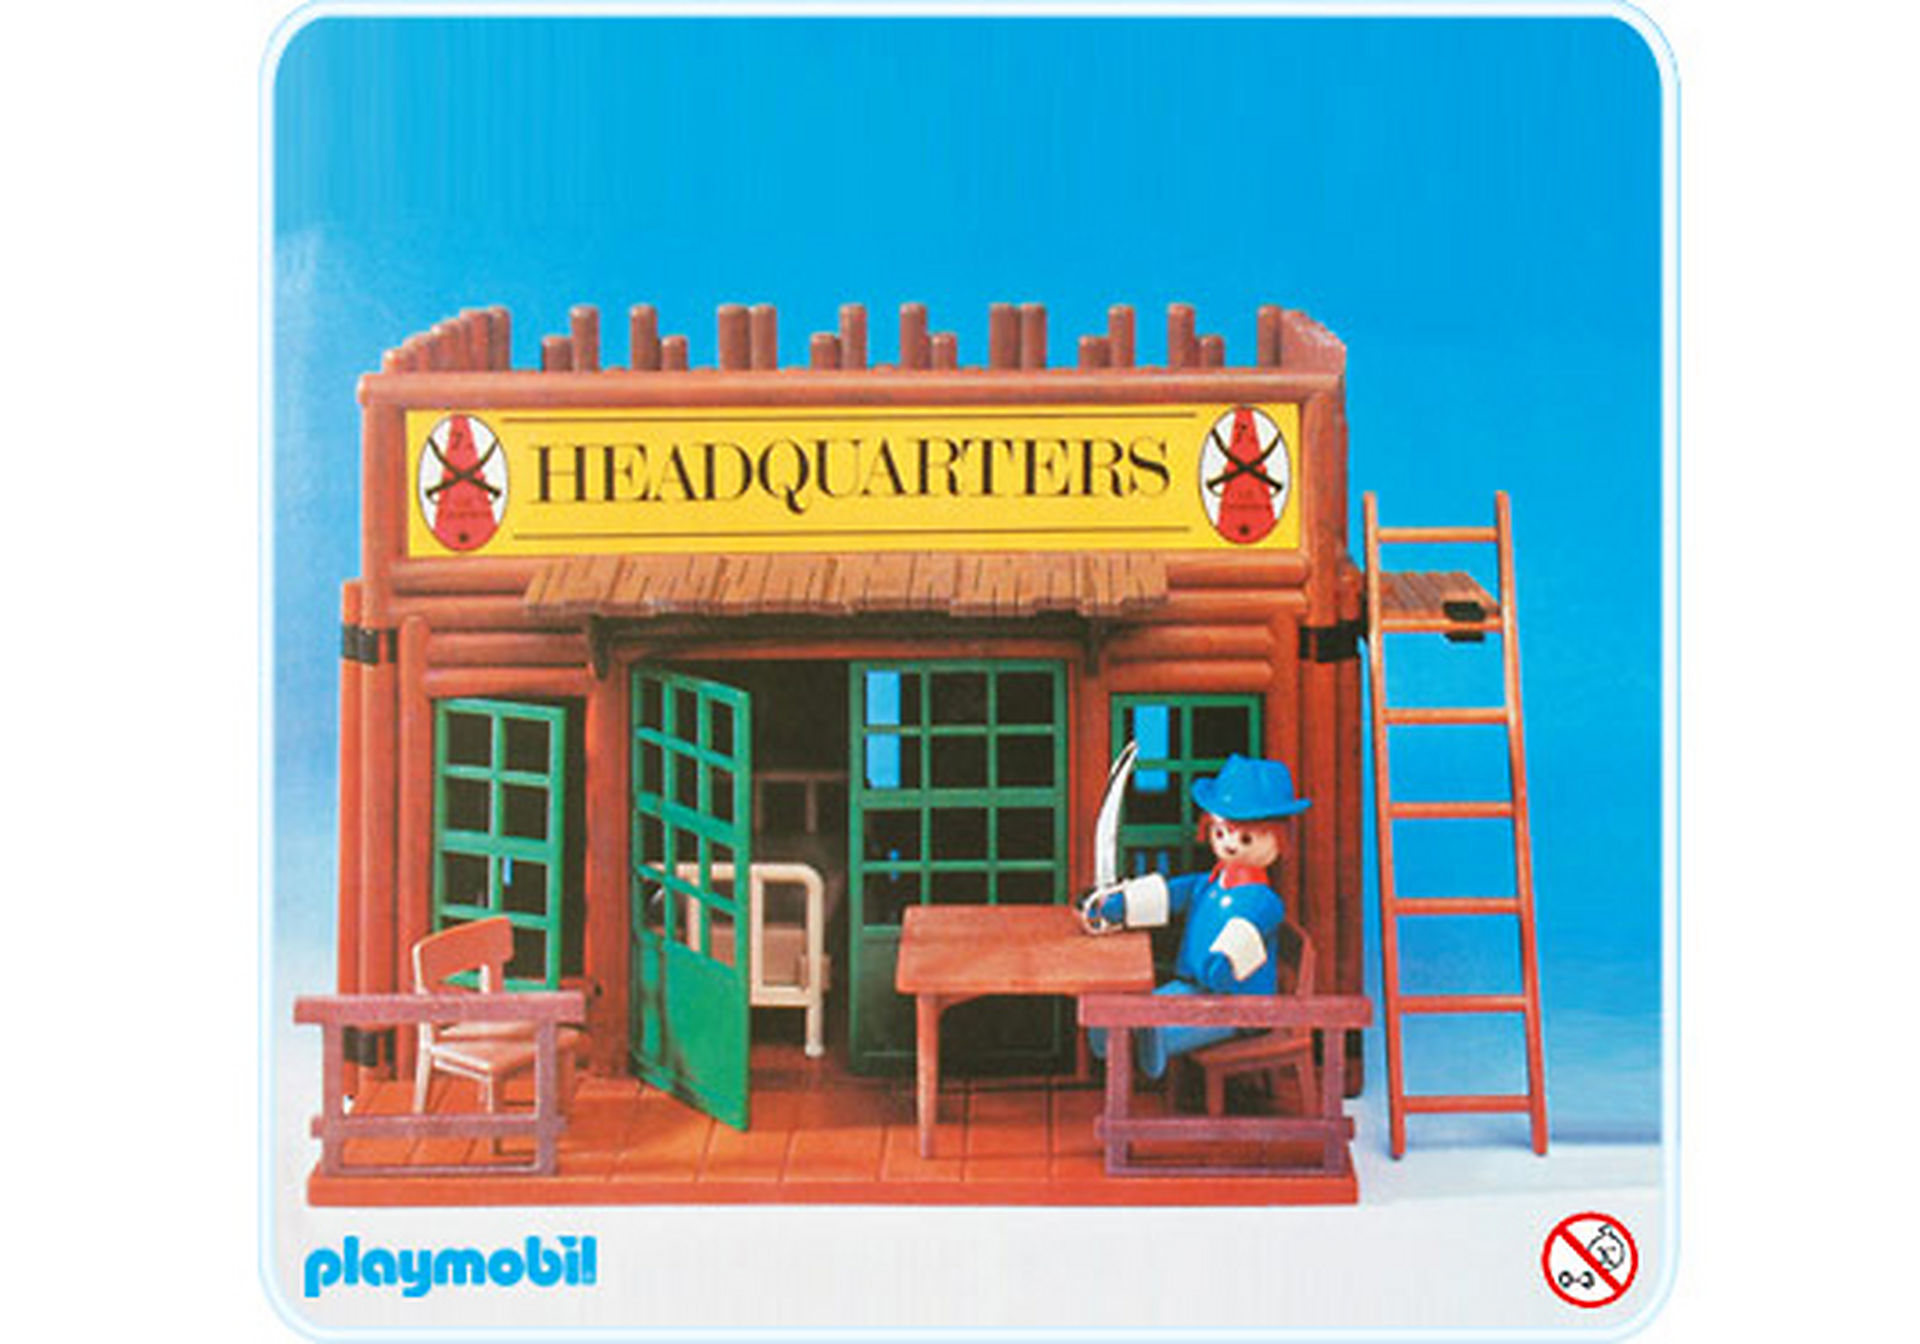 http://media.playmobil.com/i/playmobil/3429-A_product_detail/Blockhaus Head-Quarters